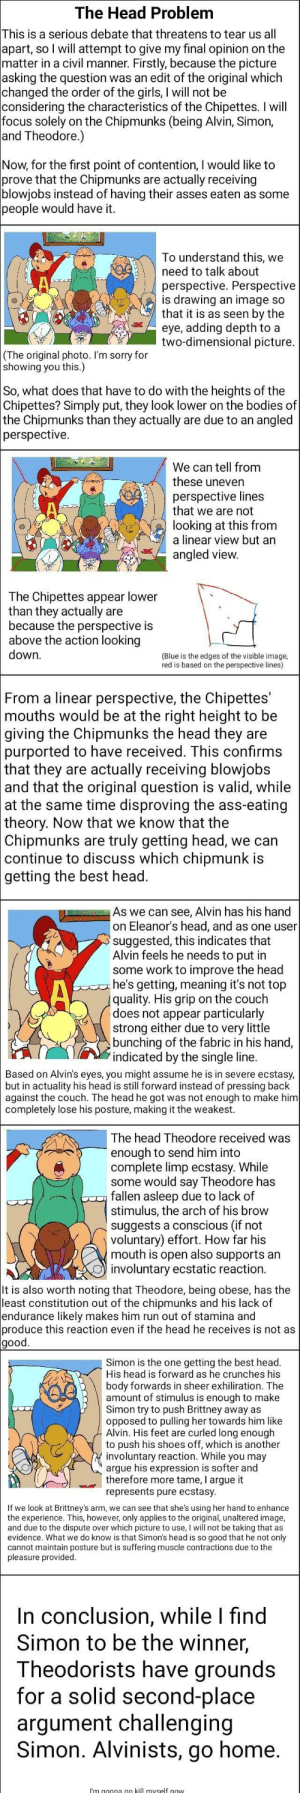 The real proof: The Head Problem  This is a serious debate that threatens to tear us all  apart, so I will attempt to give my final opinion on the  matter in a civil manner. Firstly, because the picture  asking the question was an edit of the original which  changed the order of the girls, I will not be  considering the characteristics of the Chipettes. I will  focus solely on the Chipmunks (being Alvin, Simon,  and Theodore.)  Now, for the first point of contention, I would like to  prove that the Chipmunks  blowjobs instead of having their asses eaten as some  people would have it.  actually receiving  are  To understand this, we  need to talk about  perspective. Perspective  is drawing an image so  that it is as seen by the  eye, adding depth to a  two-dimensional picture.  (The original photo. I'm sorry for  showing you this.)  So, what does that have to do with the heights of the  Chipettes? Simply put, they look lower on the bodies of  the Chipmunks than they actually are due to an angled  perspective  We can tell from  these uneven  perspective lines  that we are not  looking at this from  a linear view but an  angled view.  The Chipettes appear lower  than they actually are  because the perspective is  above the action looking  down  (Blue is the edges of the visible image,  red is based on the perspective lines)  |From a linear perspective, the Chipettes'  mouths would be at the right height to be  |giving the Chipmunks the head they are  purported to have received. This confirms  | that they are actually receiving blowjobs  and that the original question is valid, while  at the same time disproving the ass-eating  theory. Now that we know that the  Chipmunks are  continue to discuss which chipmunk is  getting the best head.  truly getting head, we can  As we can see, Alvin has his hand  on Eleanor's head, and as one user  suggested, this indicates that  Alvin feels he needs to put in  some work to improve the head  he's getting, meaning it's not top  quali